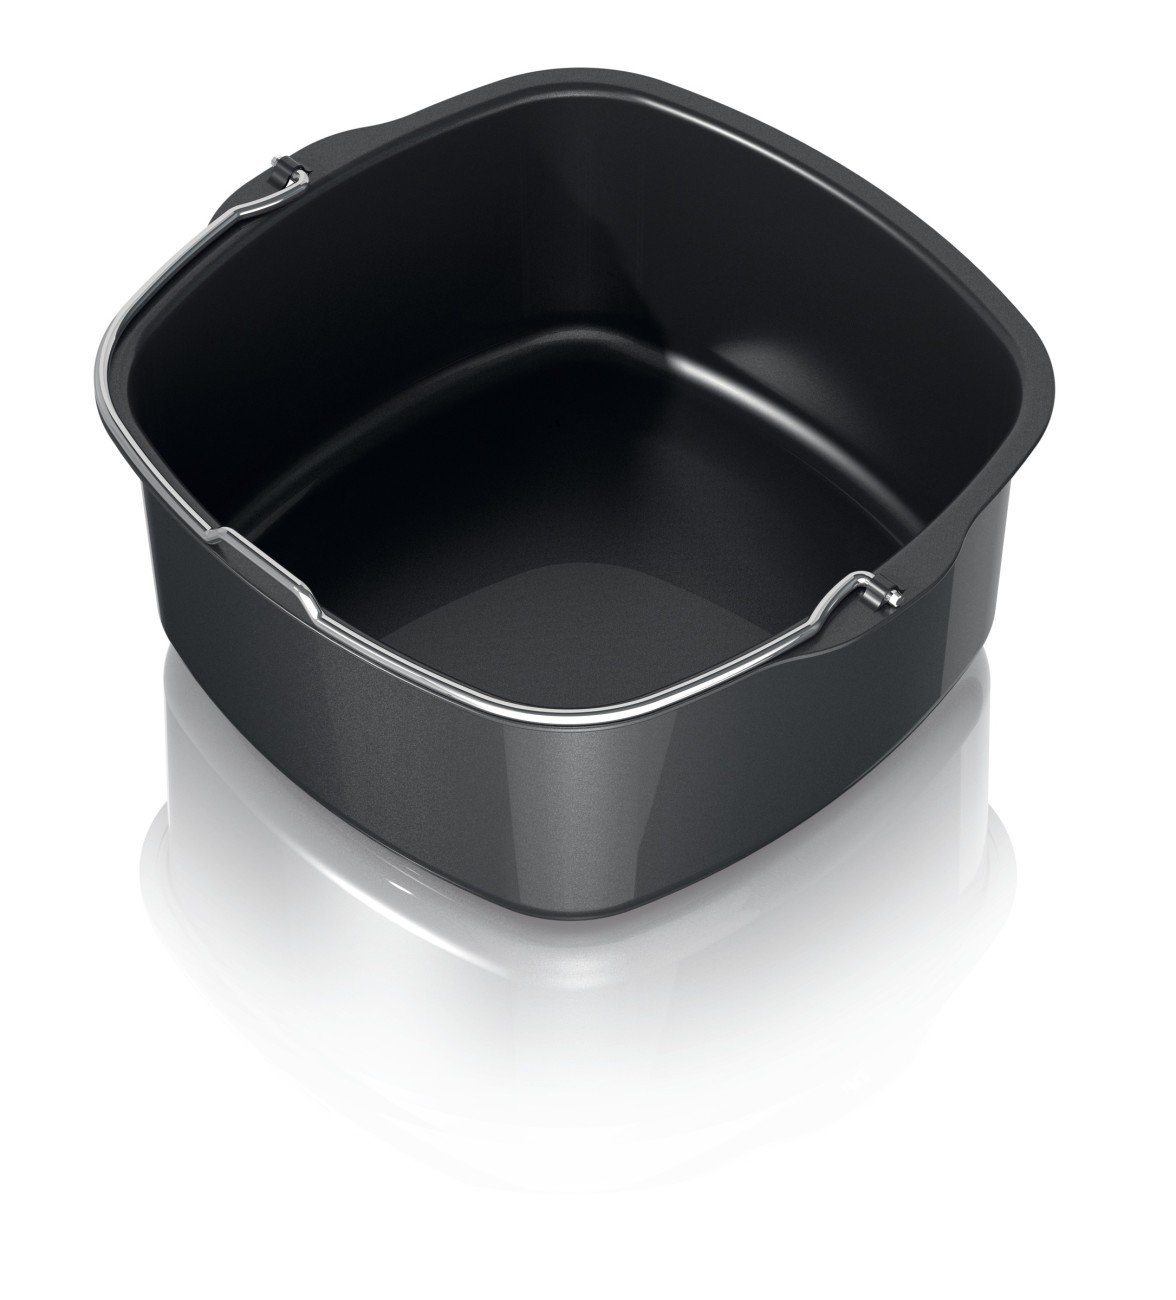 Philips Kitchen Philips HD9925/00 Airfryer, Baking Pan, Black